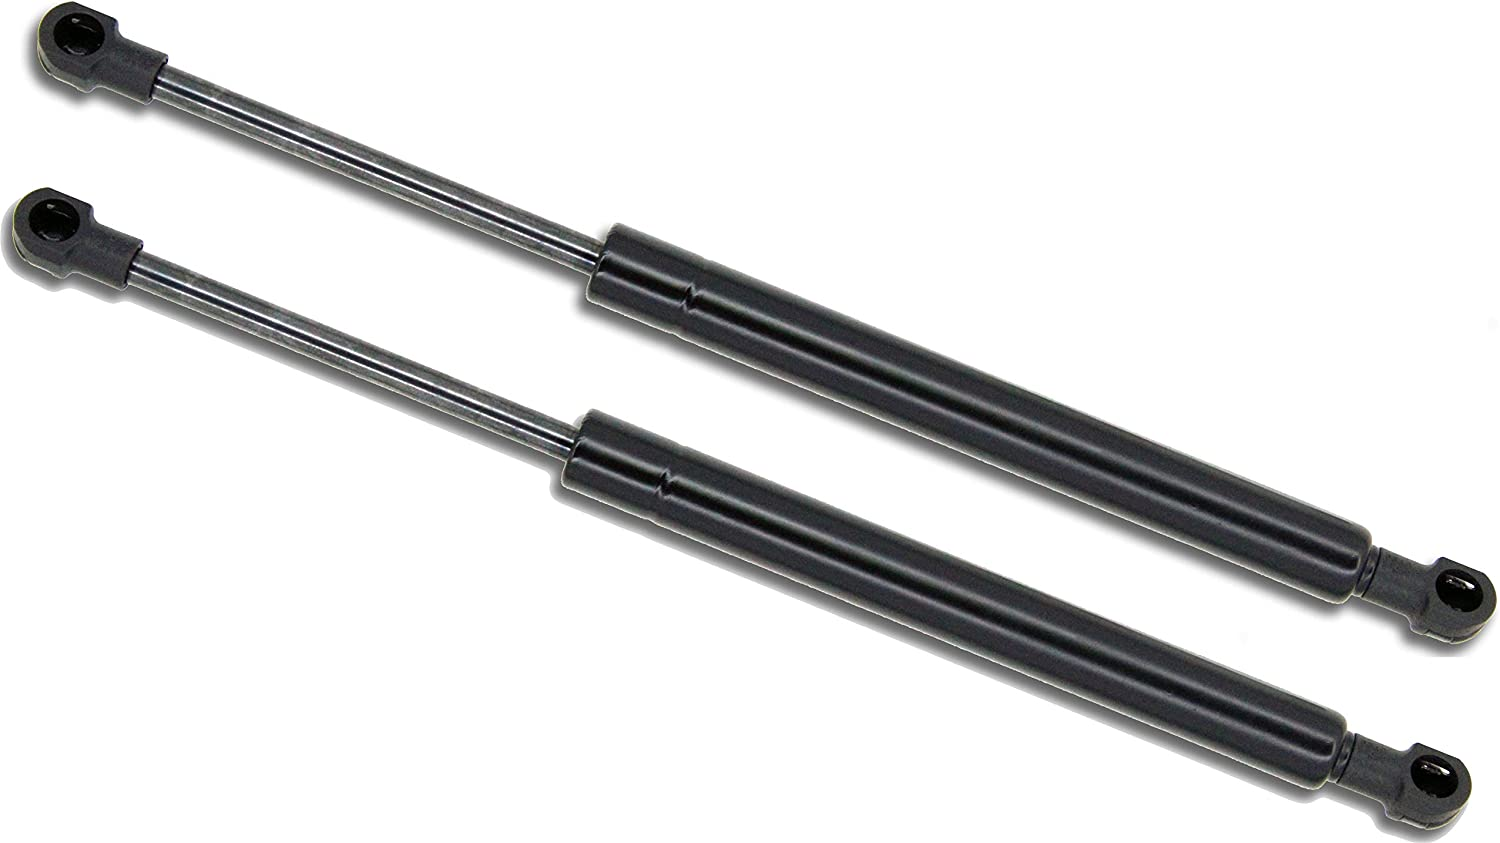 Qty (2) Fits Q50 2014 To 2020 Trunk Lift Supports (With Spoiler